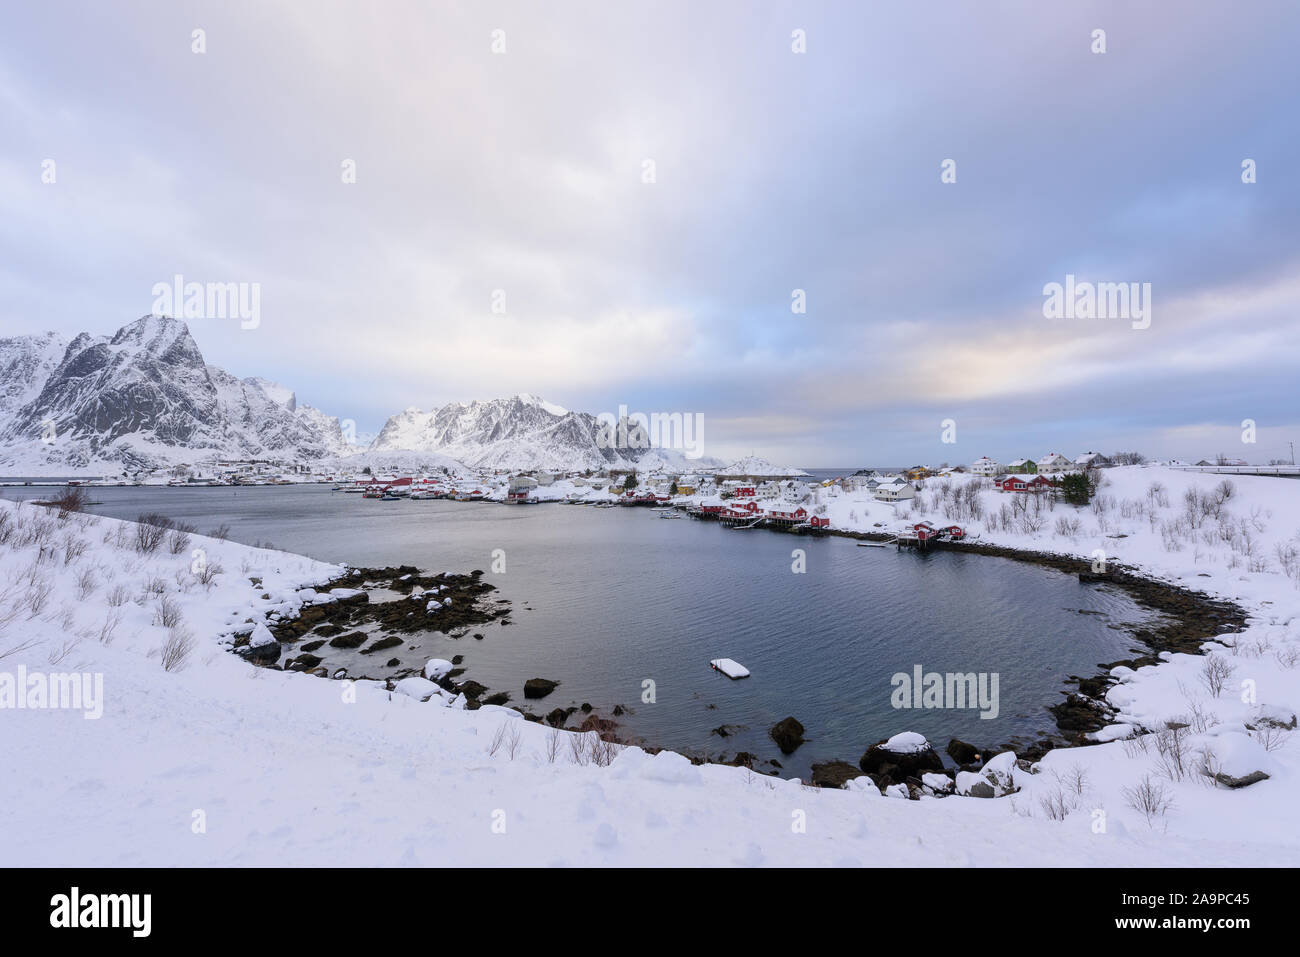 Beautiful village of Reine in Lofoten Islands, Norway. Snow covered winter landscape at sunset. Amazing tourist attraction in the polar circle. Panora Stock Photo